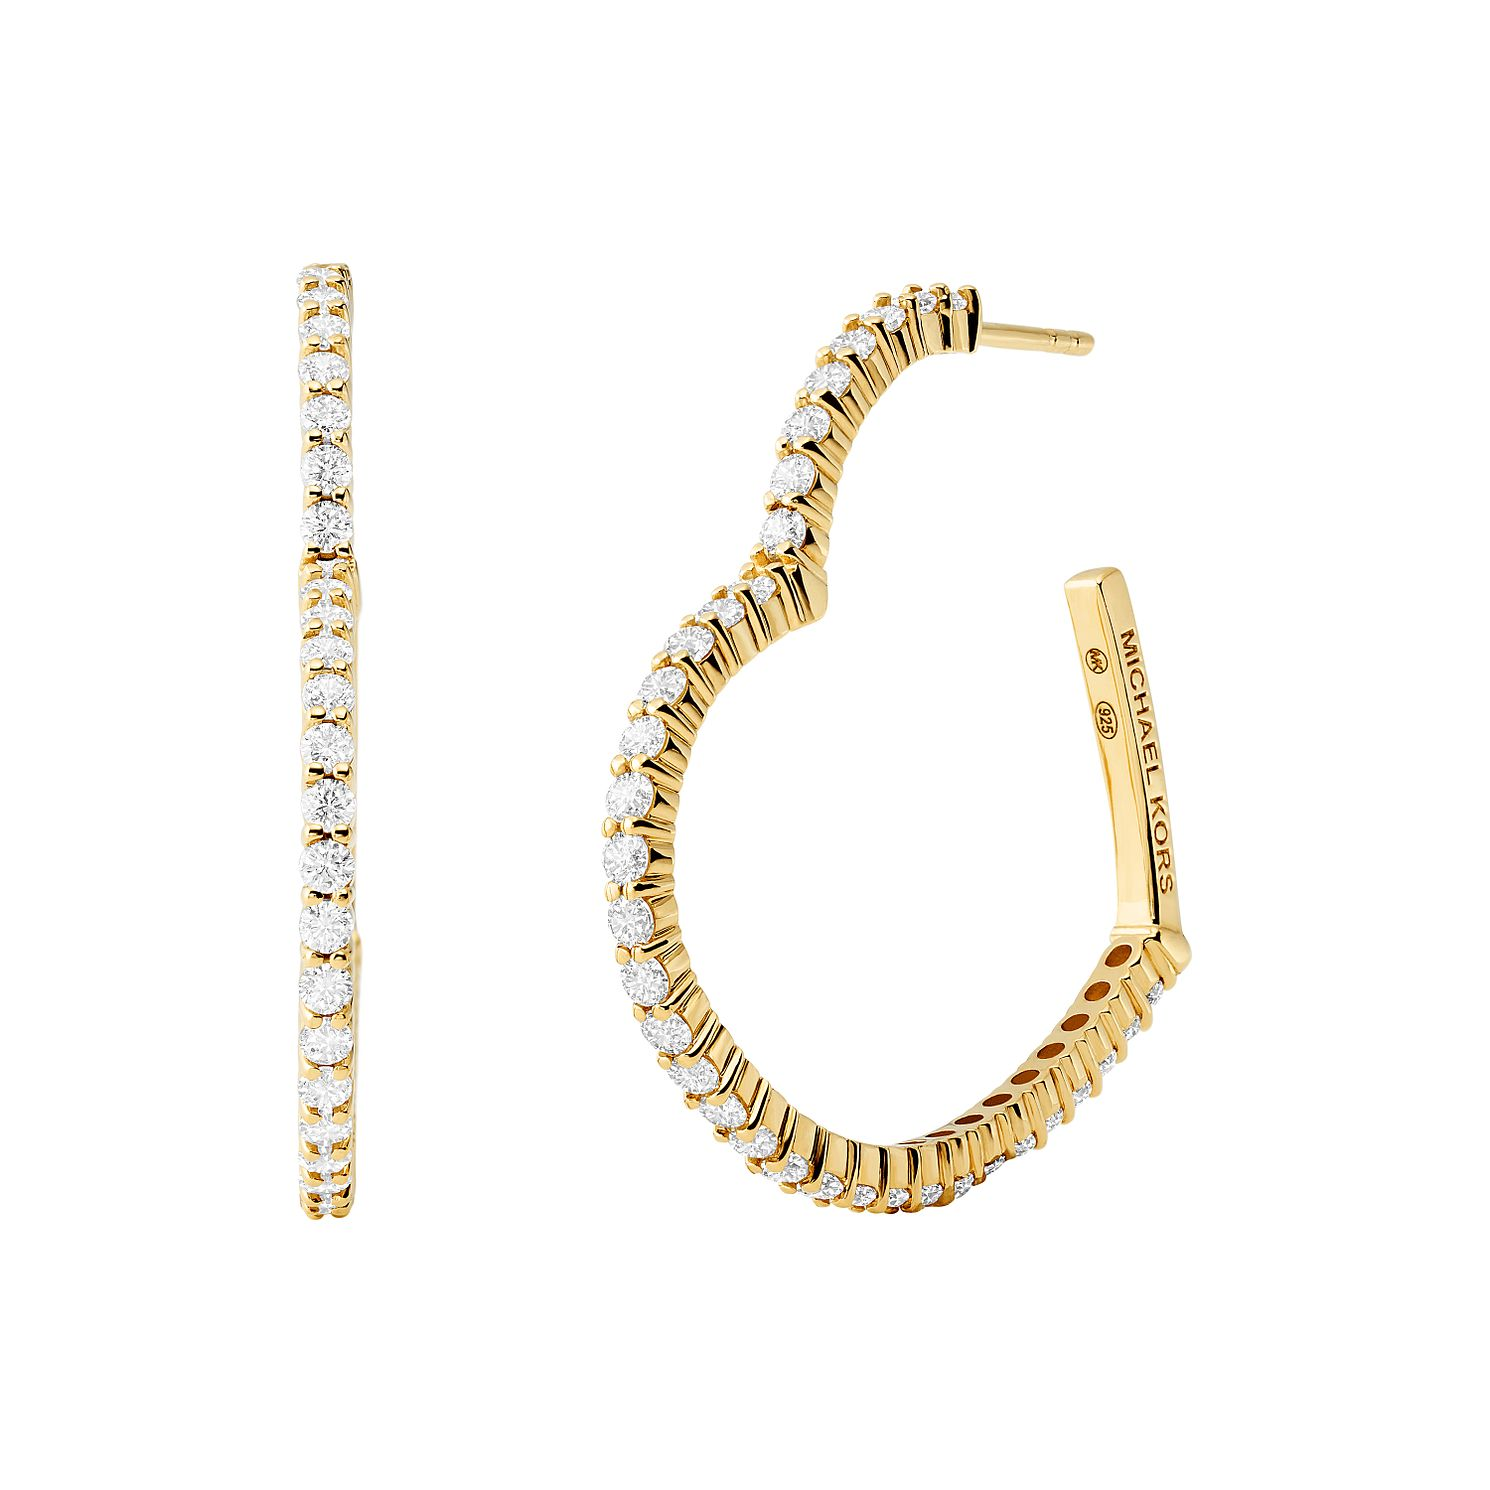 Michael Kors Yellow Gold Tone Love Heart Hoop Earrings - Product number 4939980